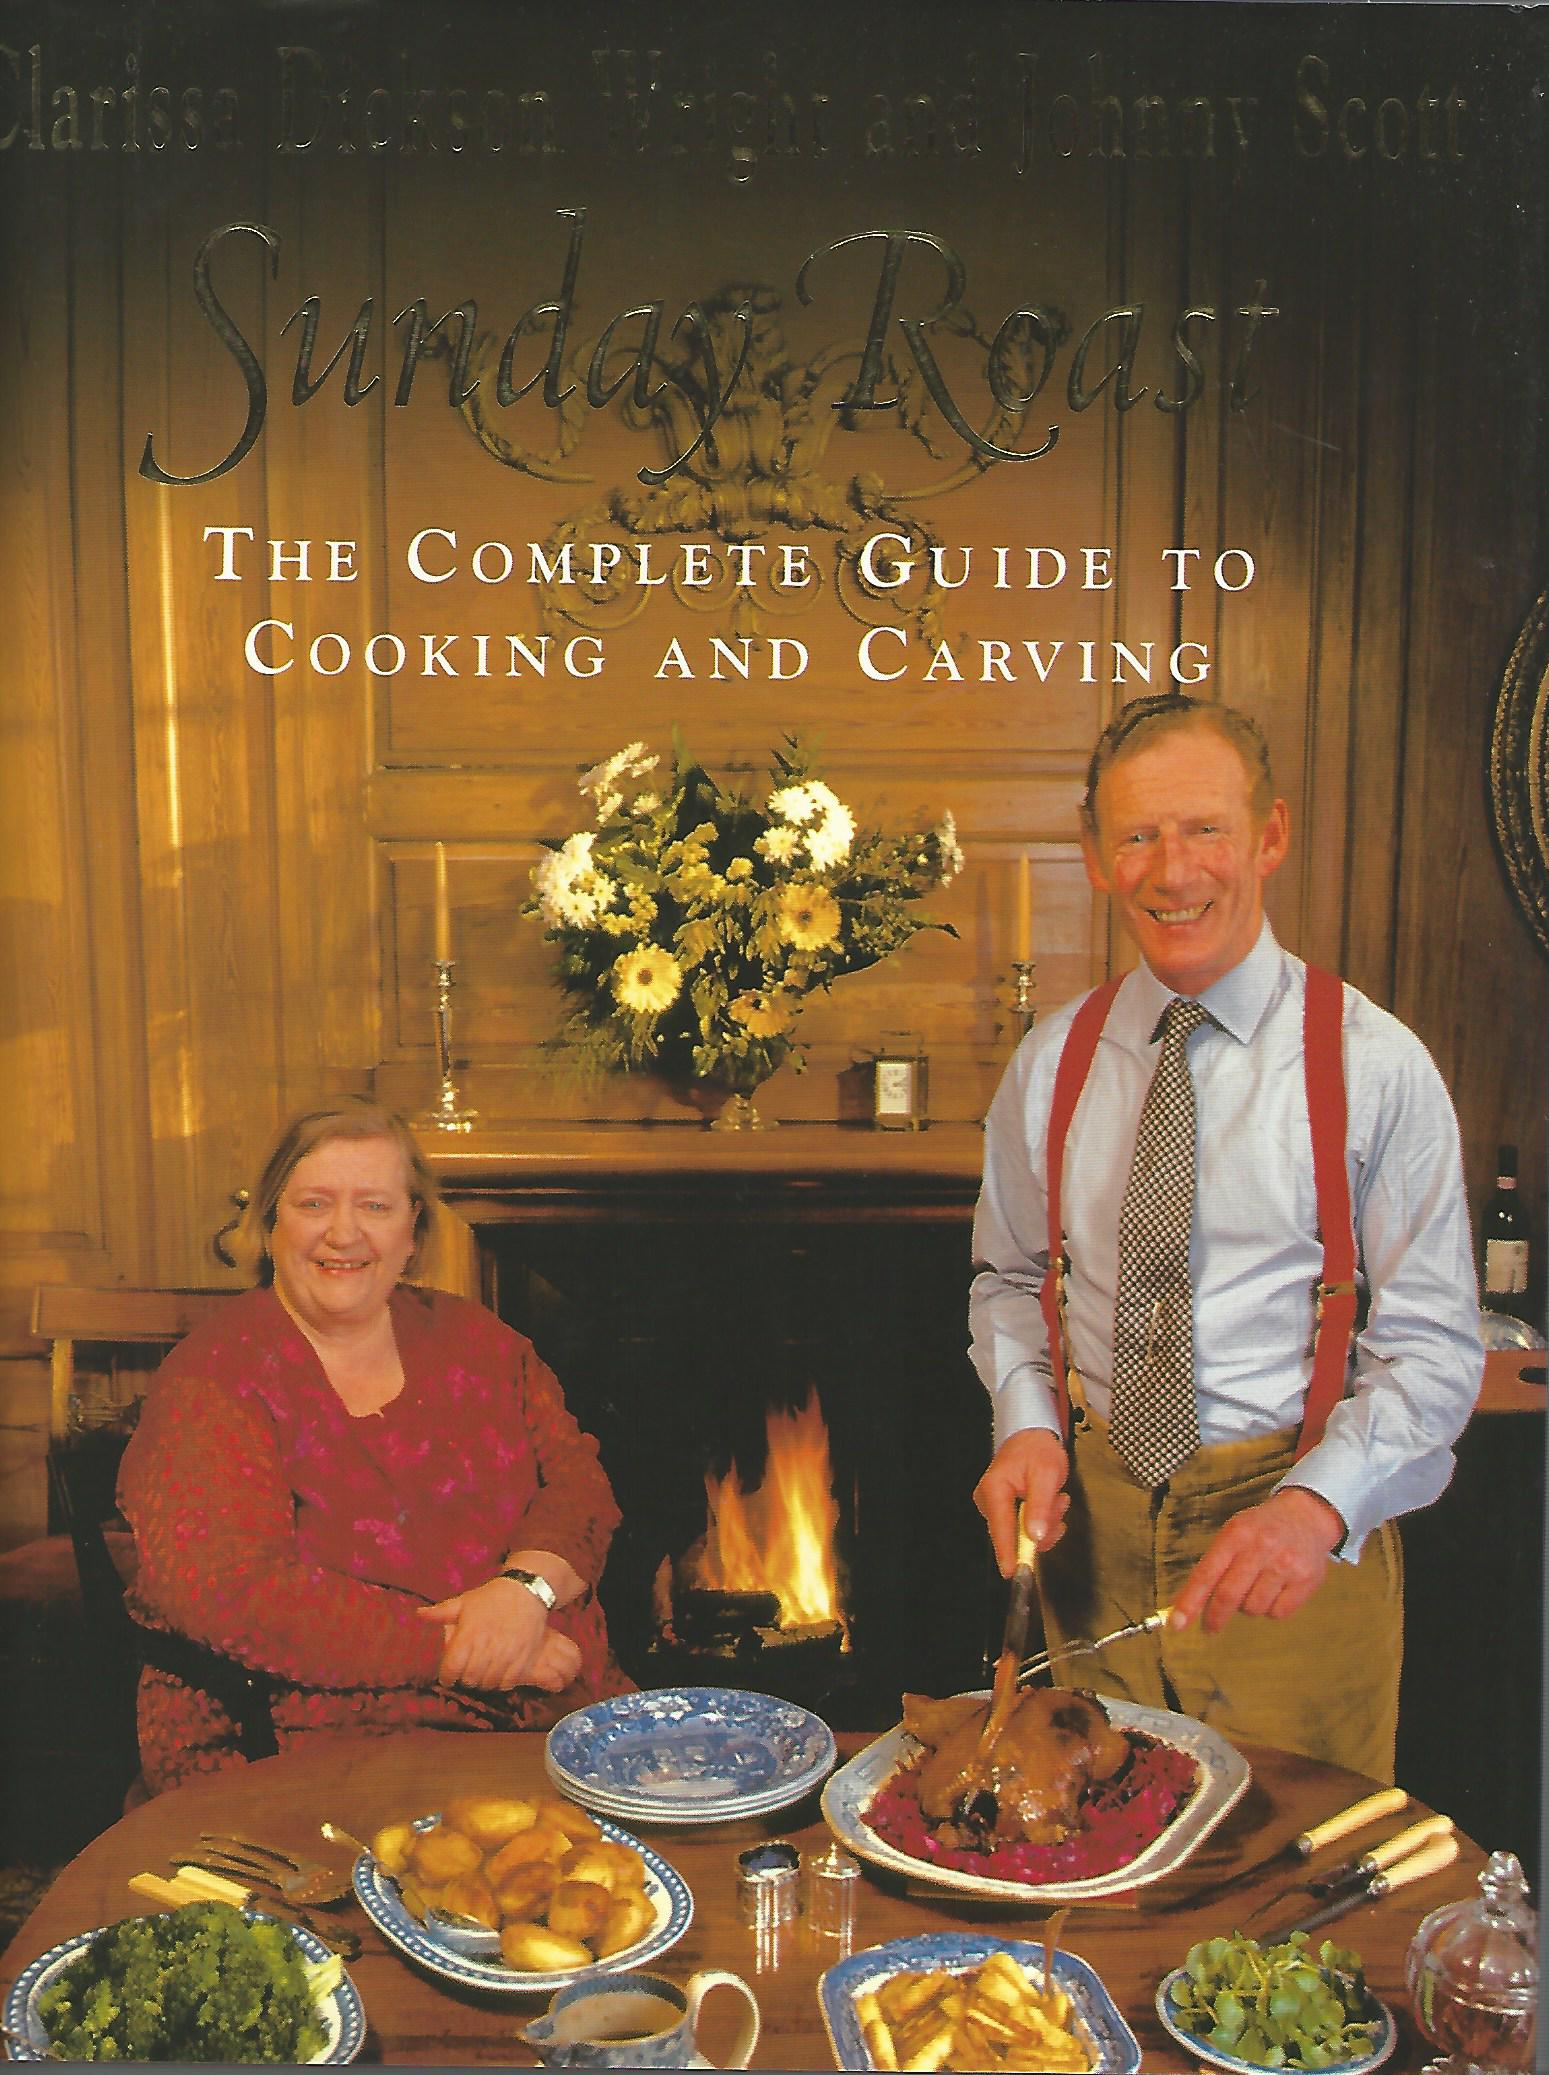 Image for Sunday Roast: The Complete Guide to Cooking and Carving.